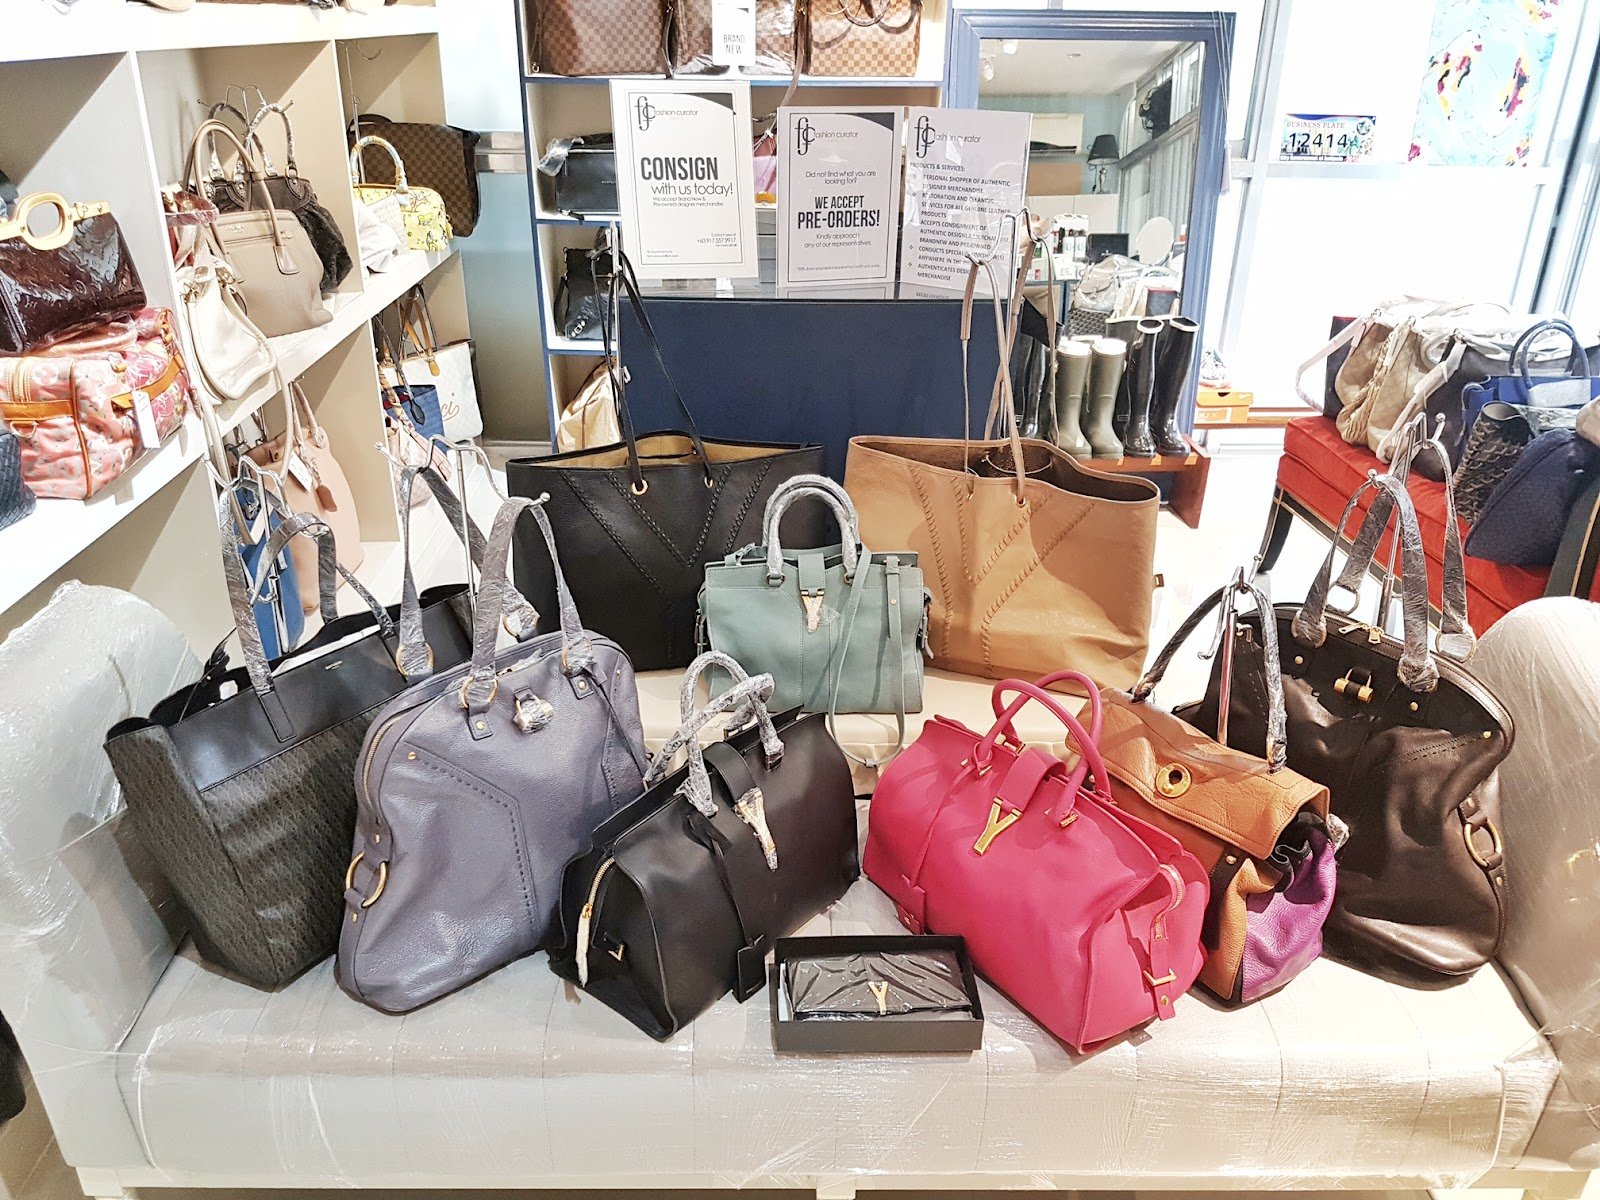 Cebu, Fashion Blogger, Beauty Blogger, Lifestyle, Luxury Items, Cebu Shops, Celine Mini Luggage, Cebu Events, Fashion Curator Manila, branded bags, for sale, Cebu trunk show, pop-up shop, branded preloved bags,